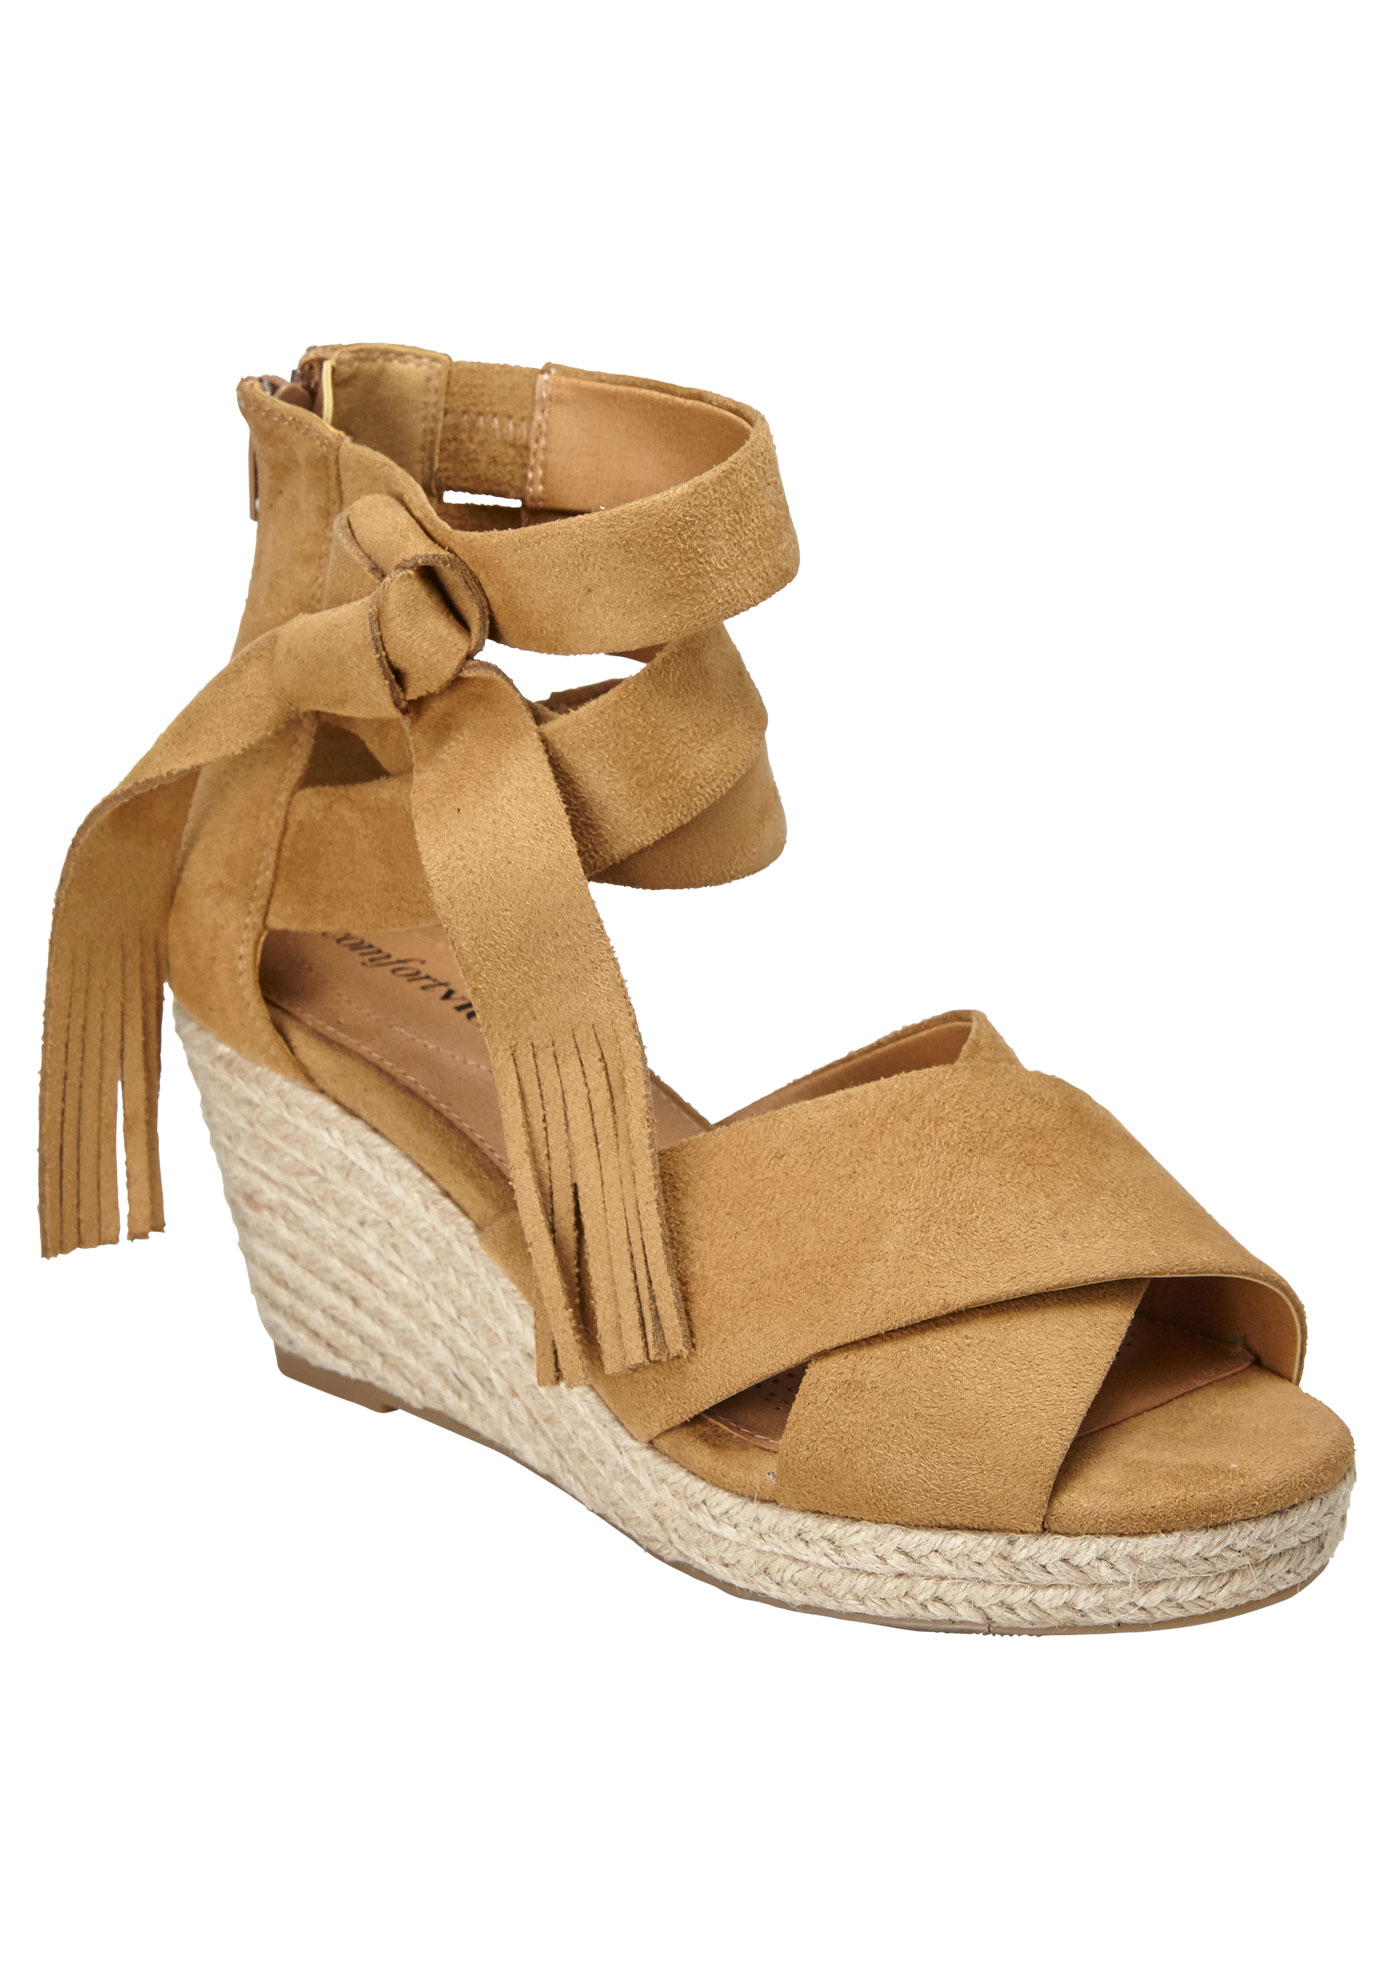 Zion Espadrilles by Comfortview® factory outlet cheap price limited edition online sale lowest price vbIDRrvvHF